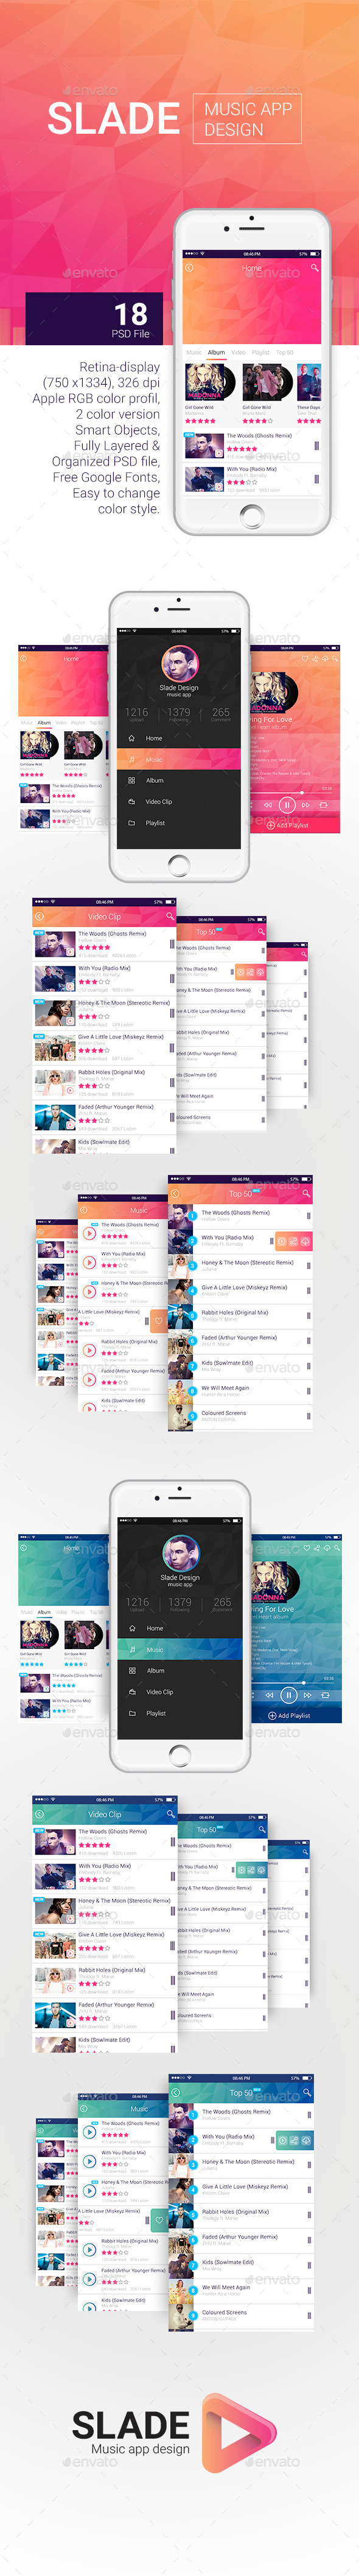 GraphicRiver Slade Music App Design 10698722